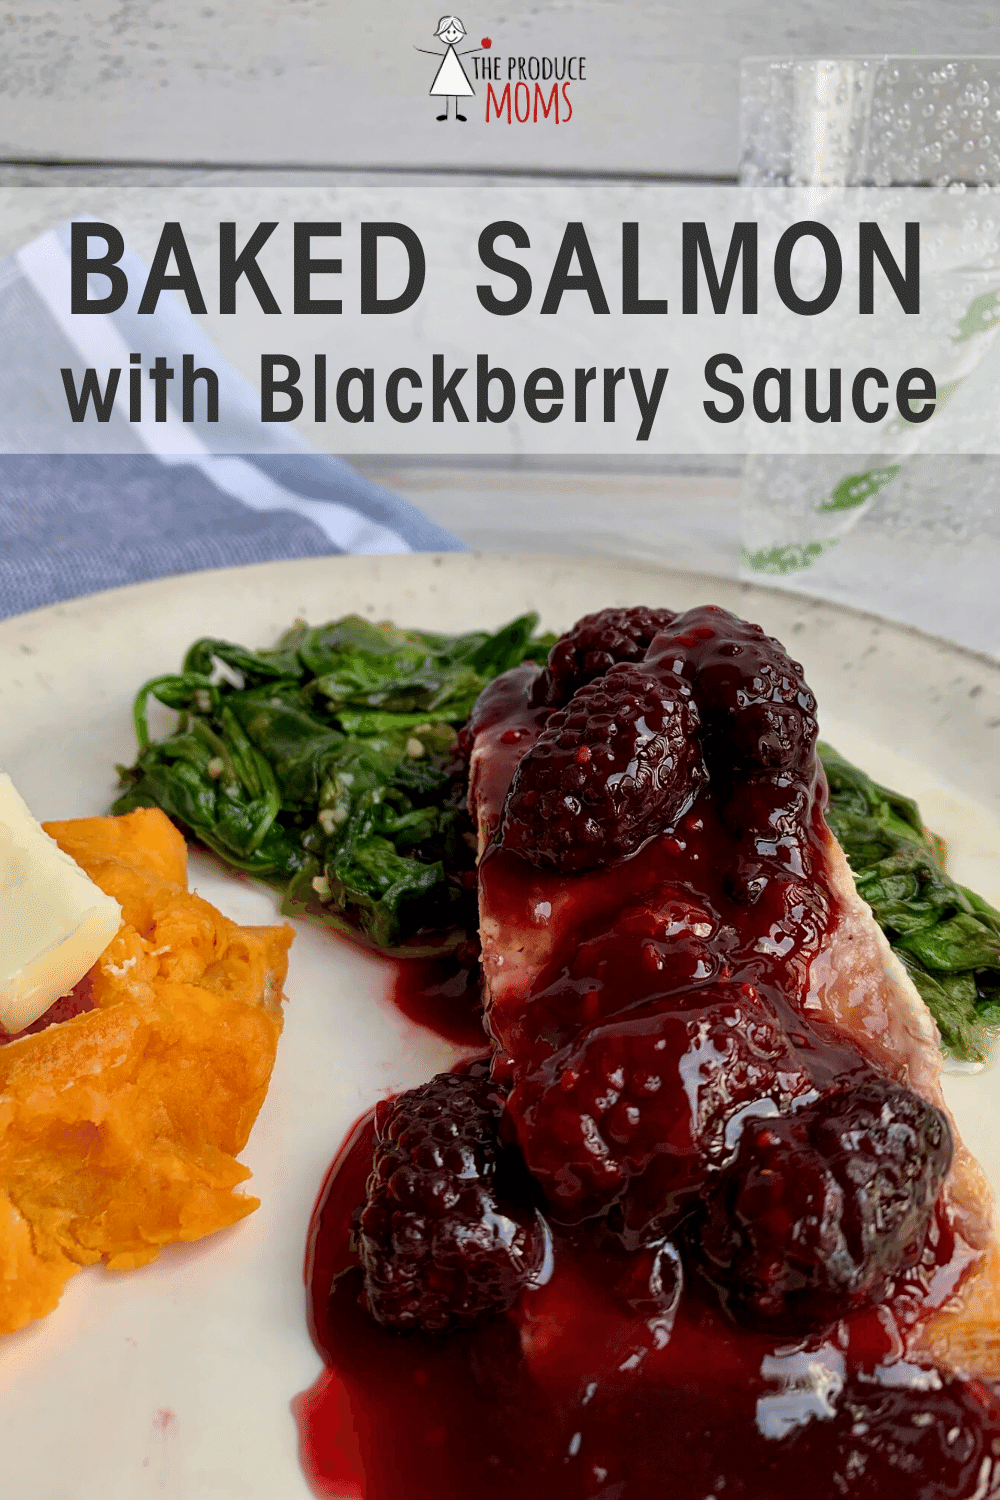 Baked Salmon with Blackberry Sauce